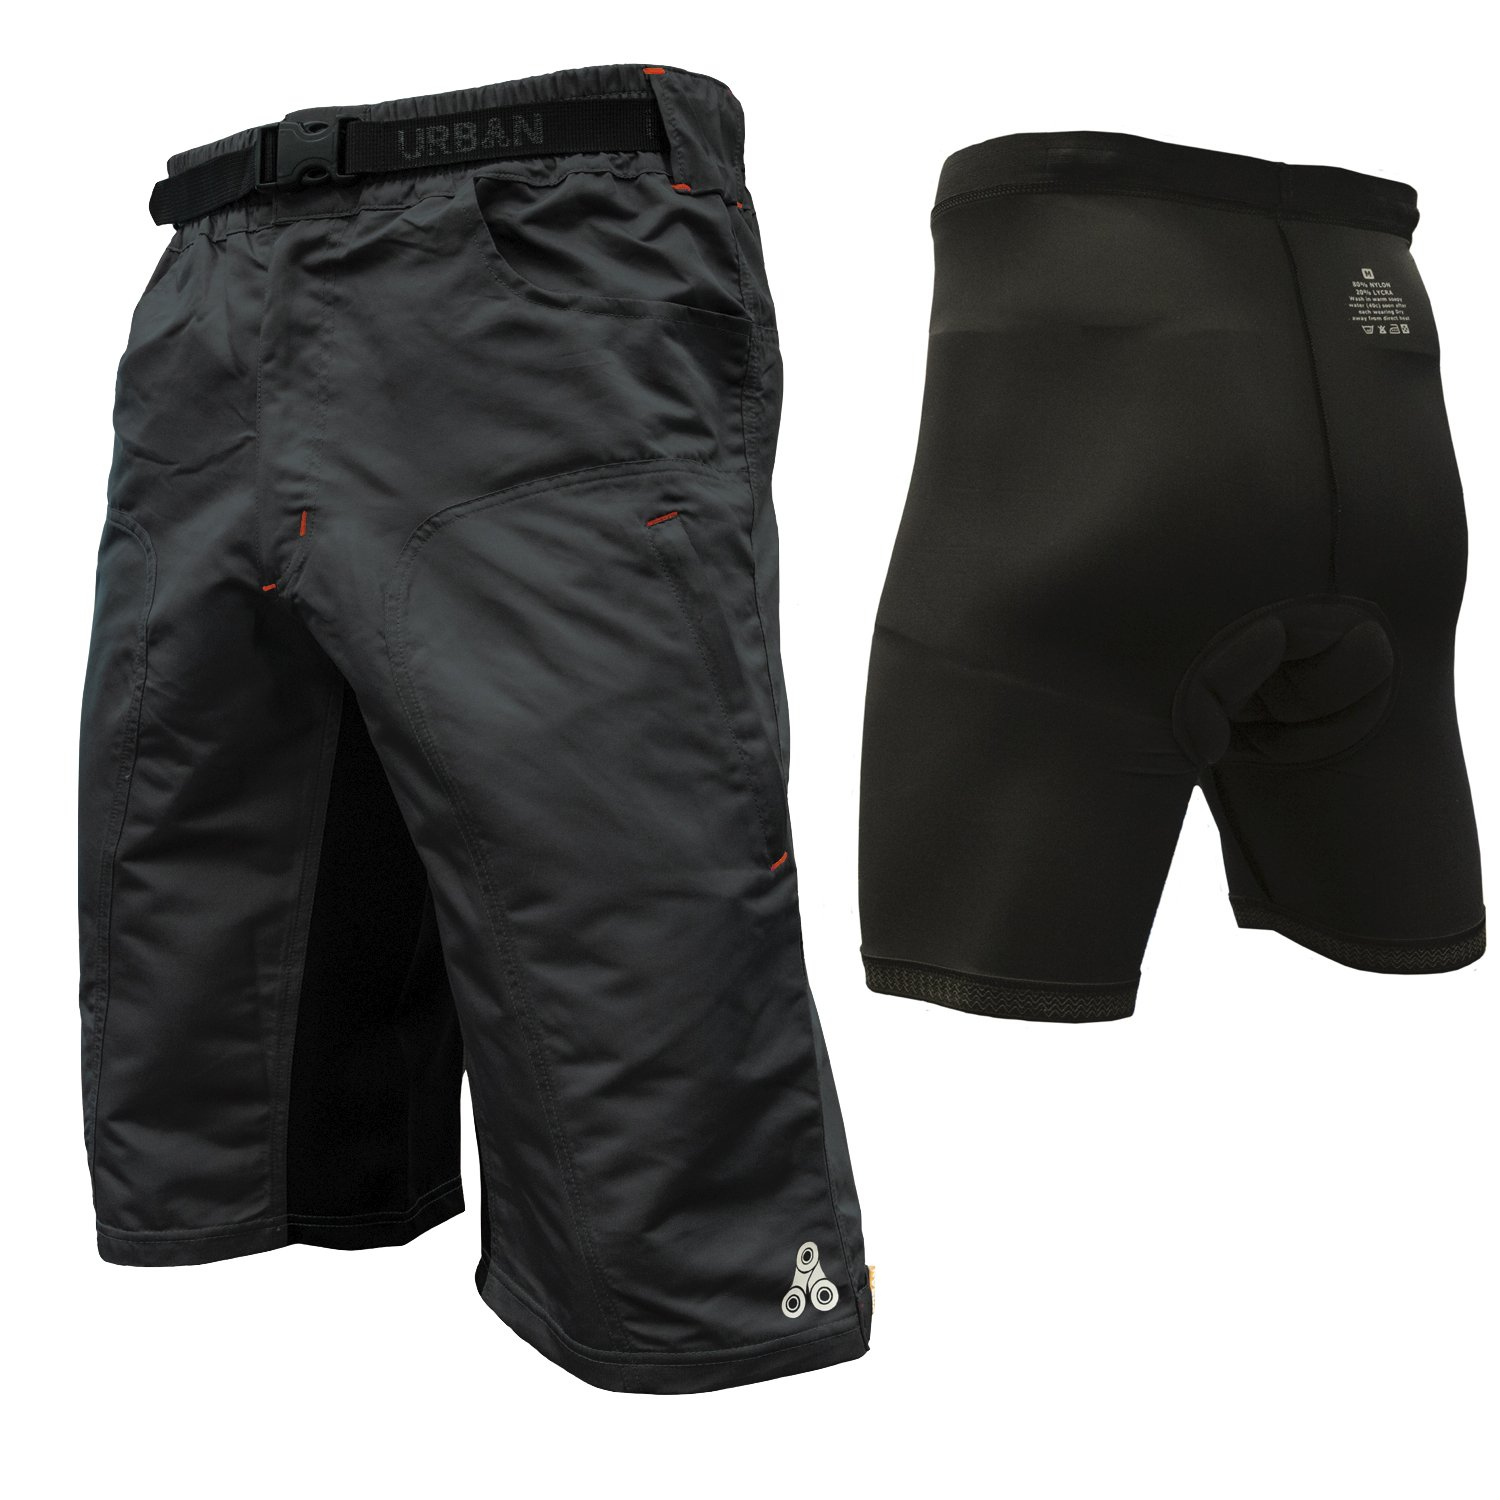 The Enduro - Men's MTB Off Road Cycling Shorts with ClickFast Padded Undershorts with Coolmax Technology (2XL, Black) by Urban Cycling Apparel